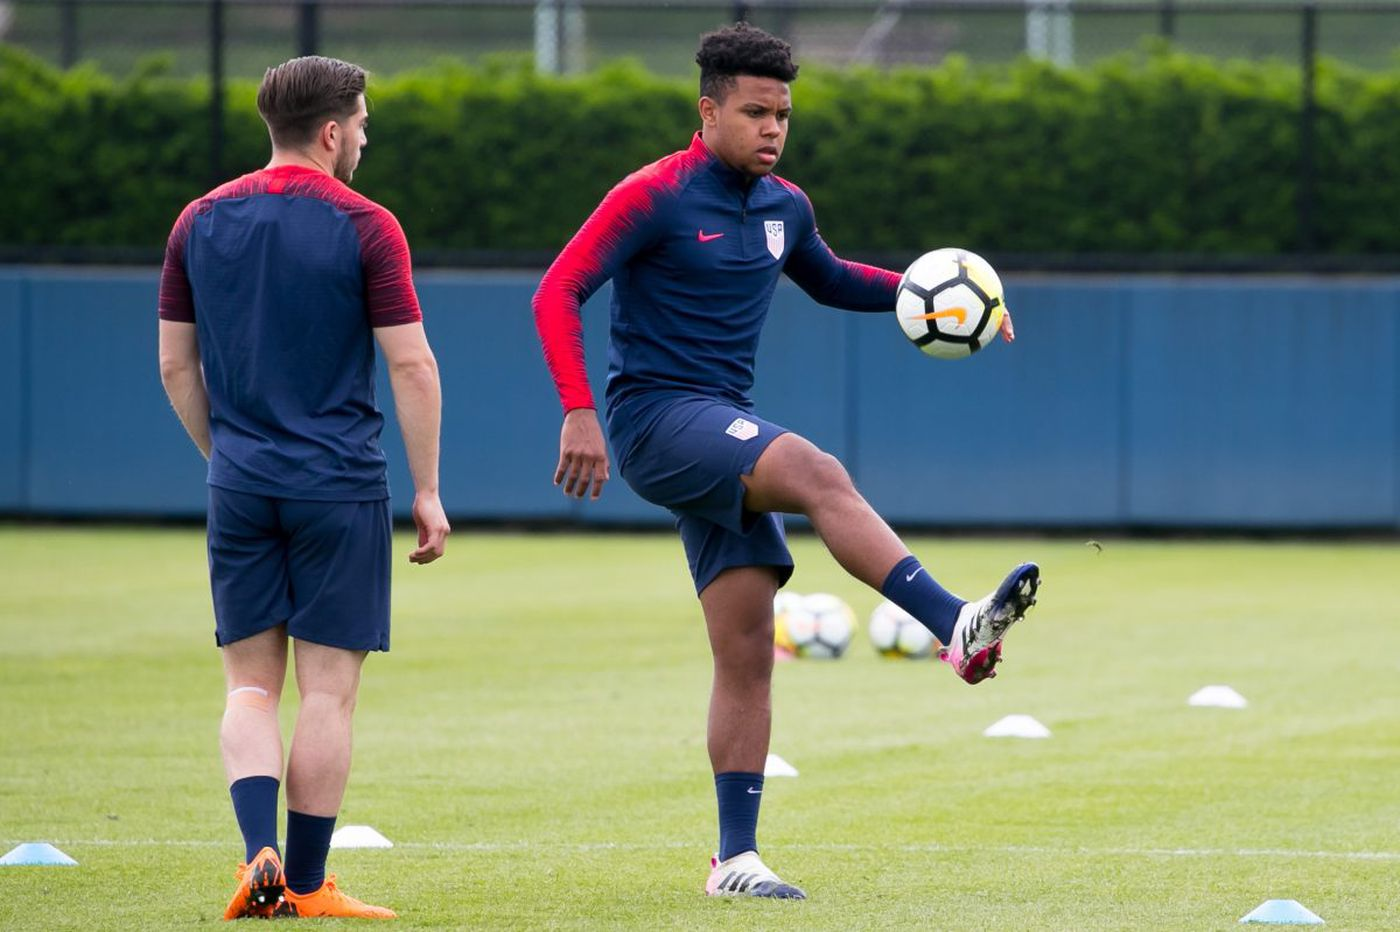 a903d9cc4 Weston McKennie looking to build on impressive U.S. national team debut